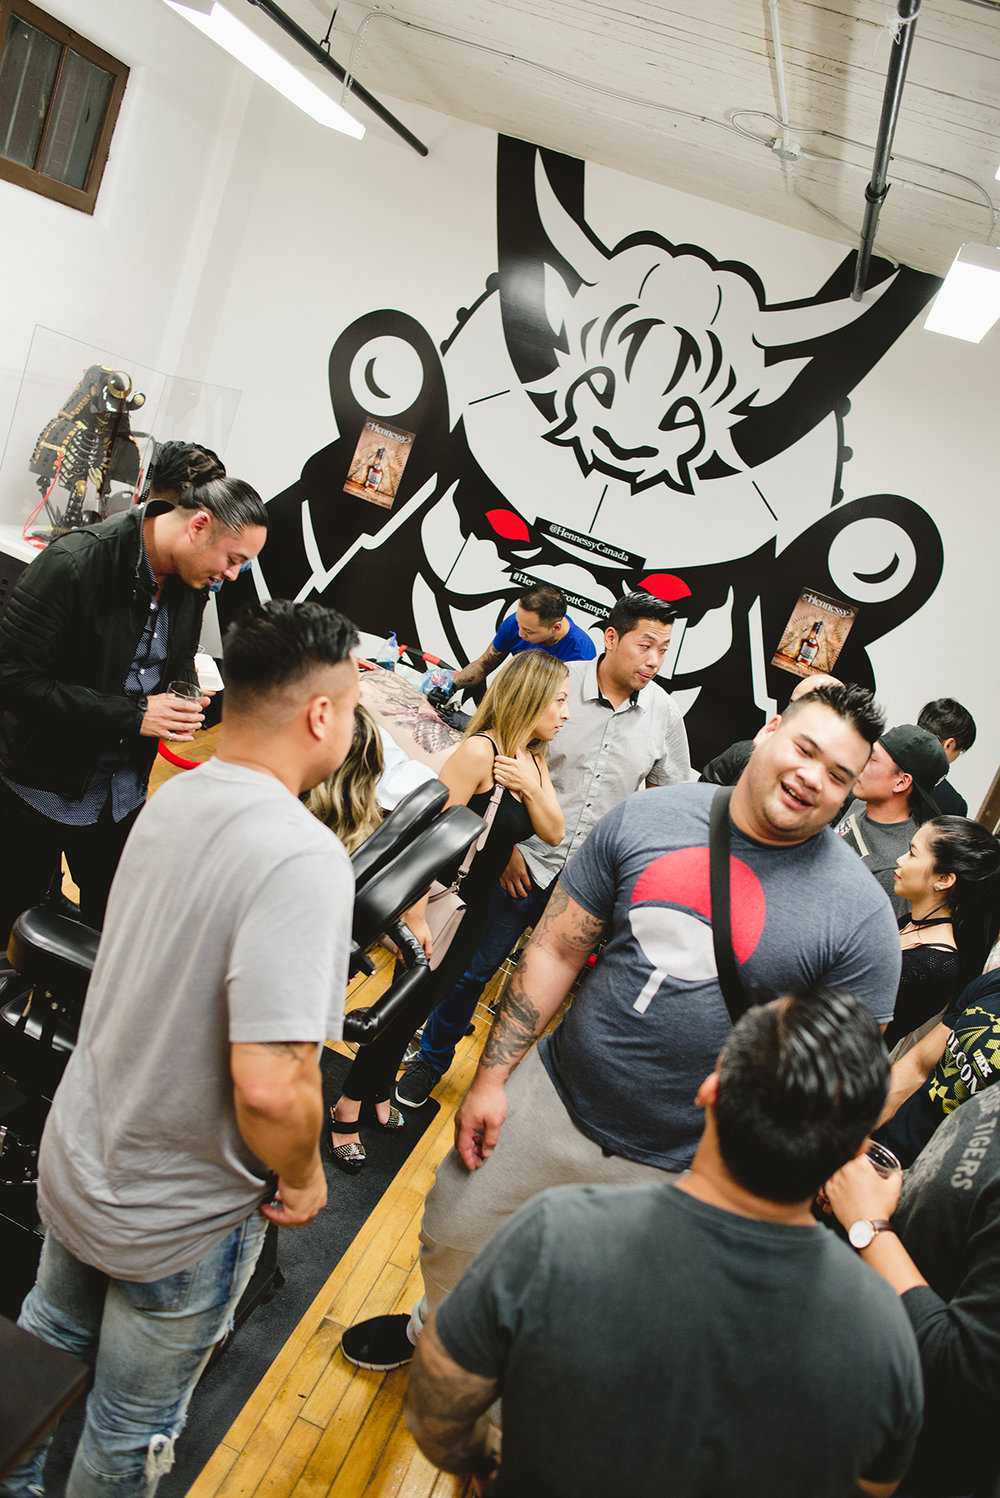 46 Kai 7th Samurai tattoos & Hennessy Scott Campbell pop up event.jpg